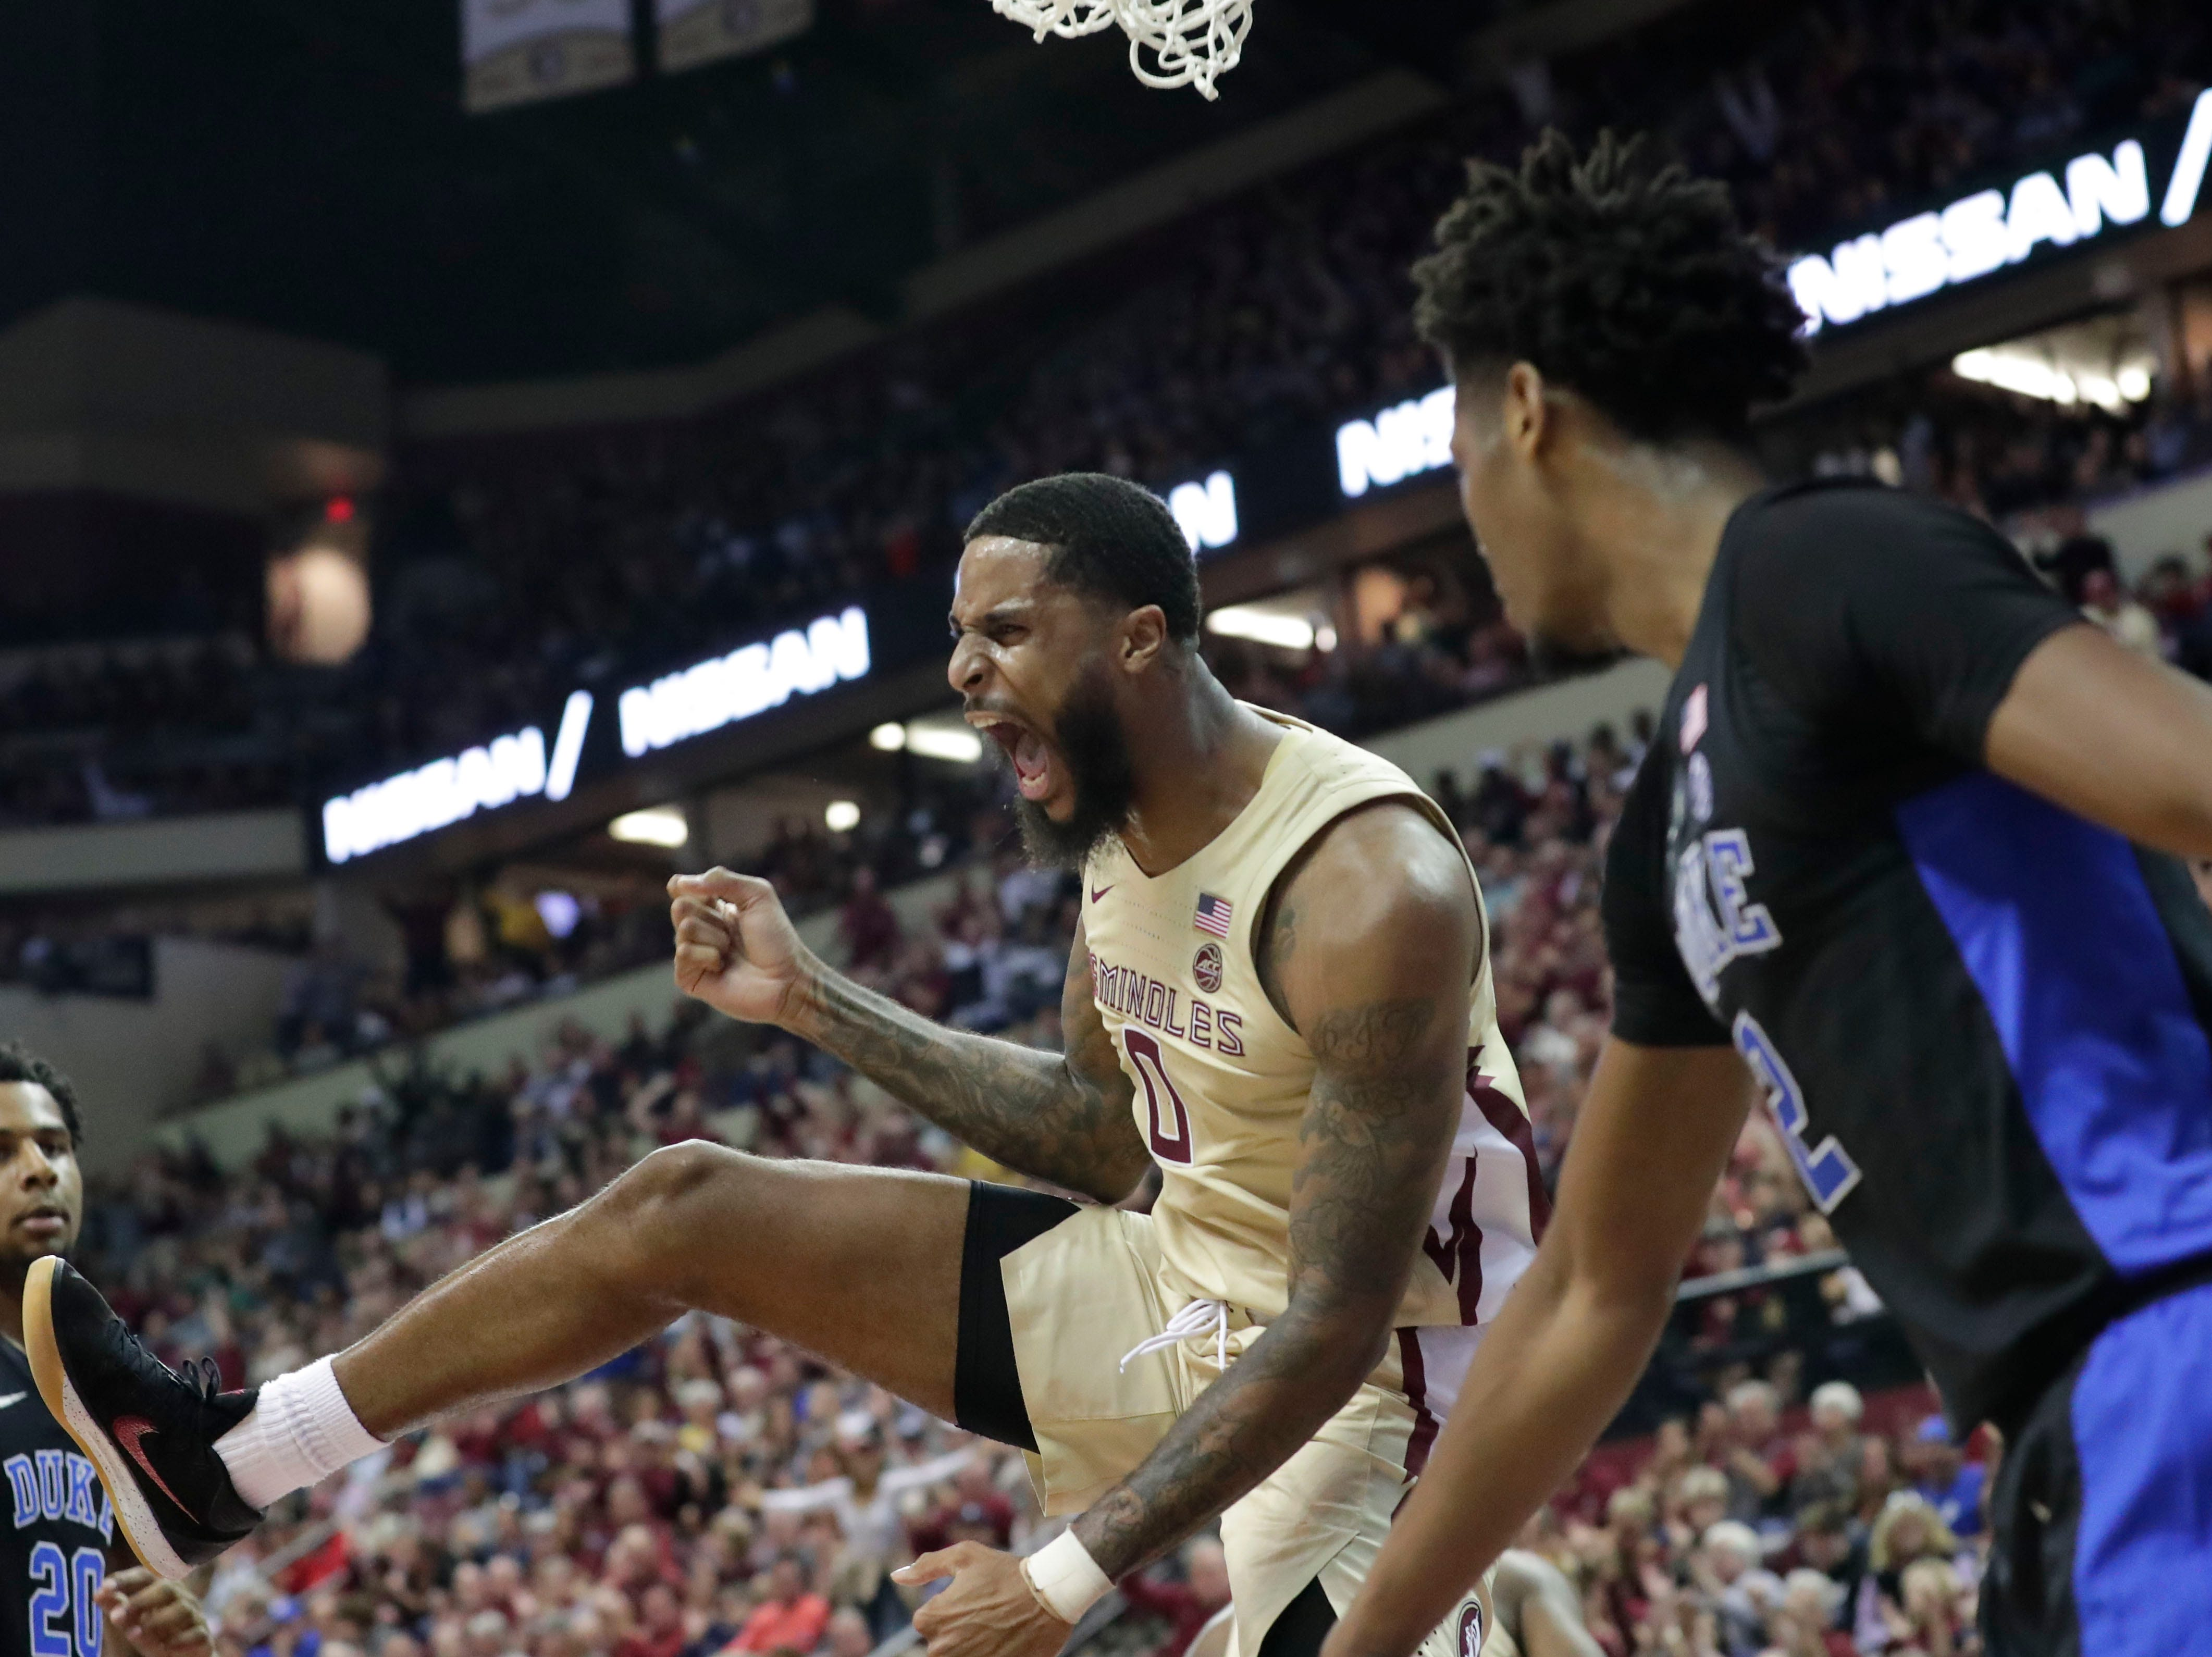 Florida State Seminoles forward Phil Cofer (0) celebrates his slam dunk. Ranked 13 in the ACC, the Florida State Seminoles host the number 1 team, the Duke Blue Devils, at the Tucker Civic Center, Saturday, Jan. 12, 2019.